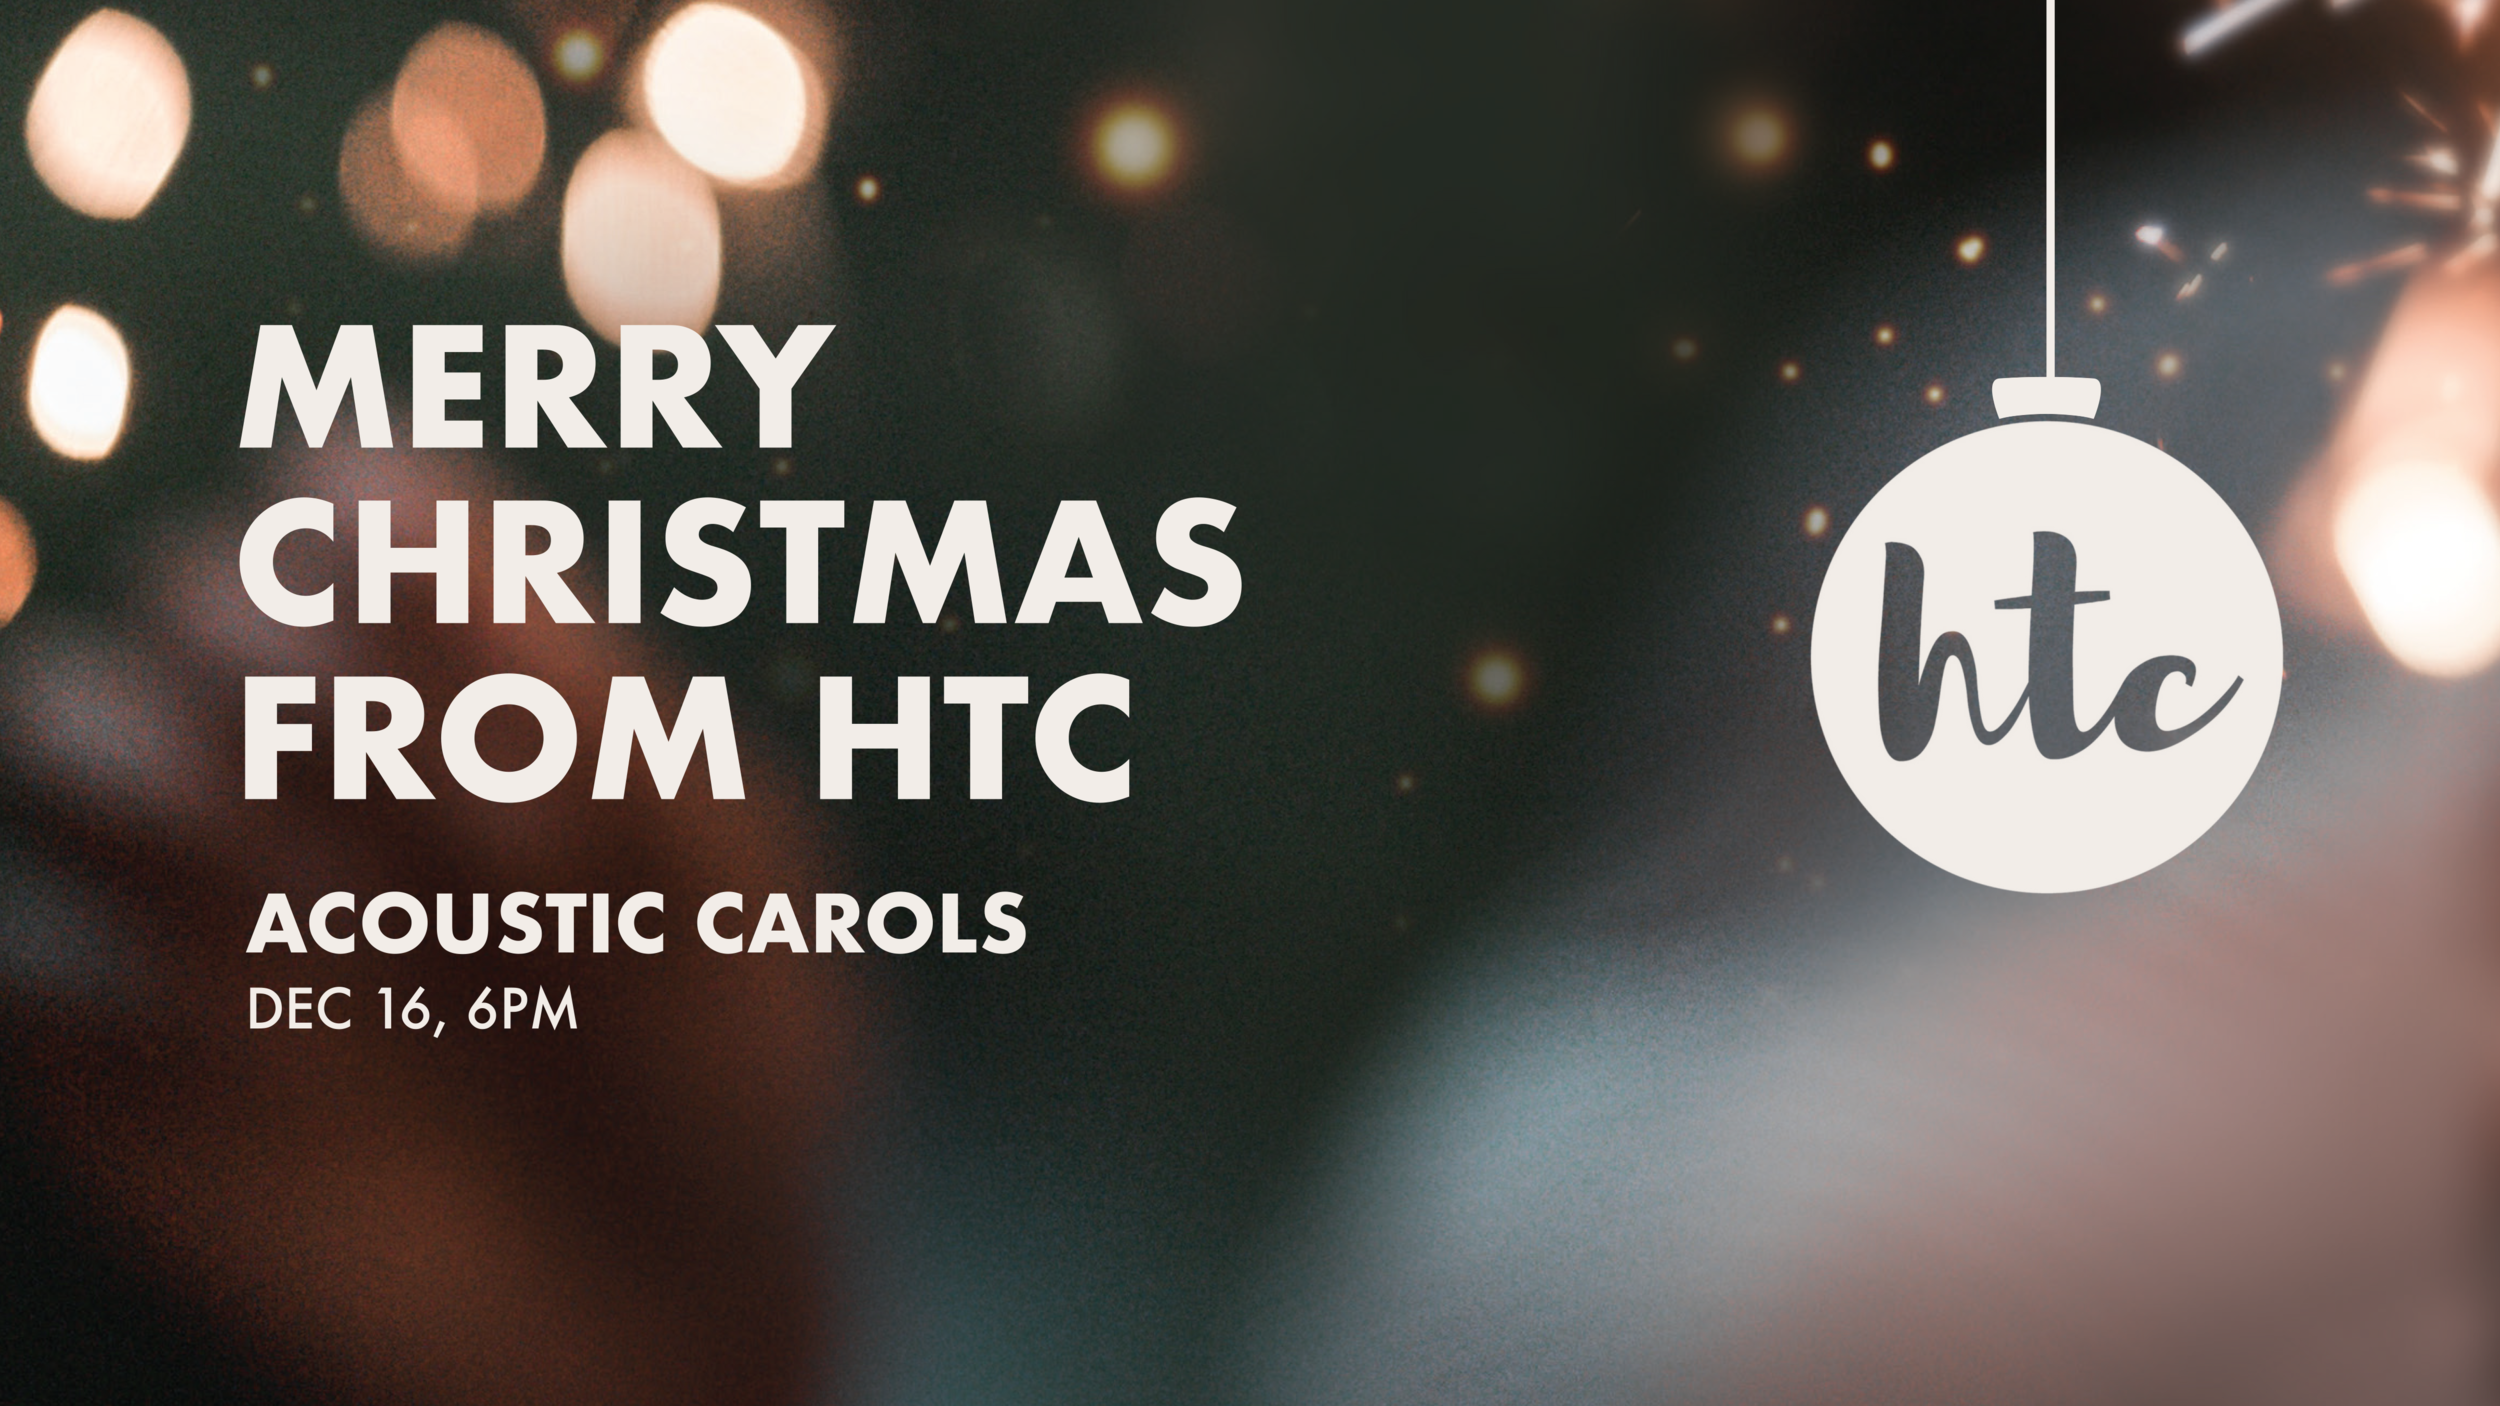 acoustic - 181028_HTC_Christmas-Screens-16-9_V03.0-5.png